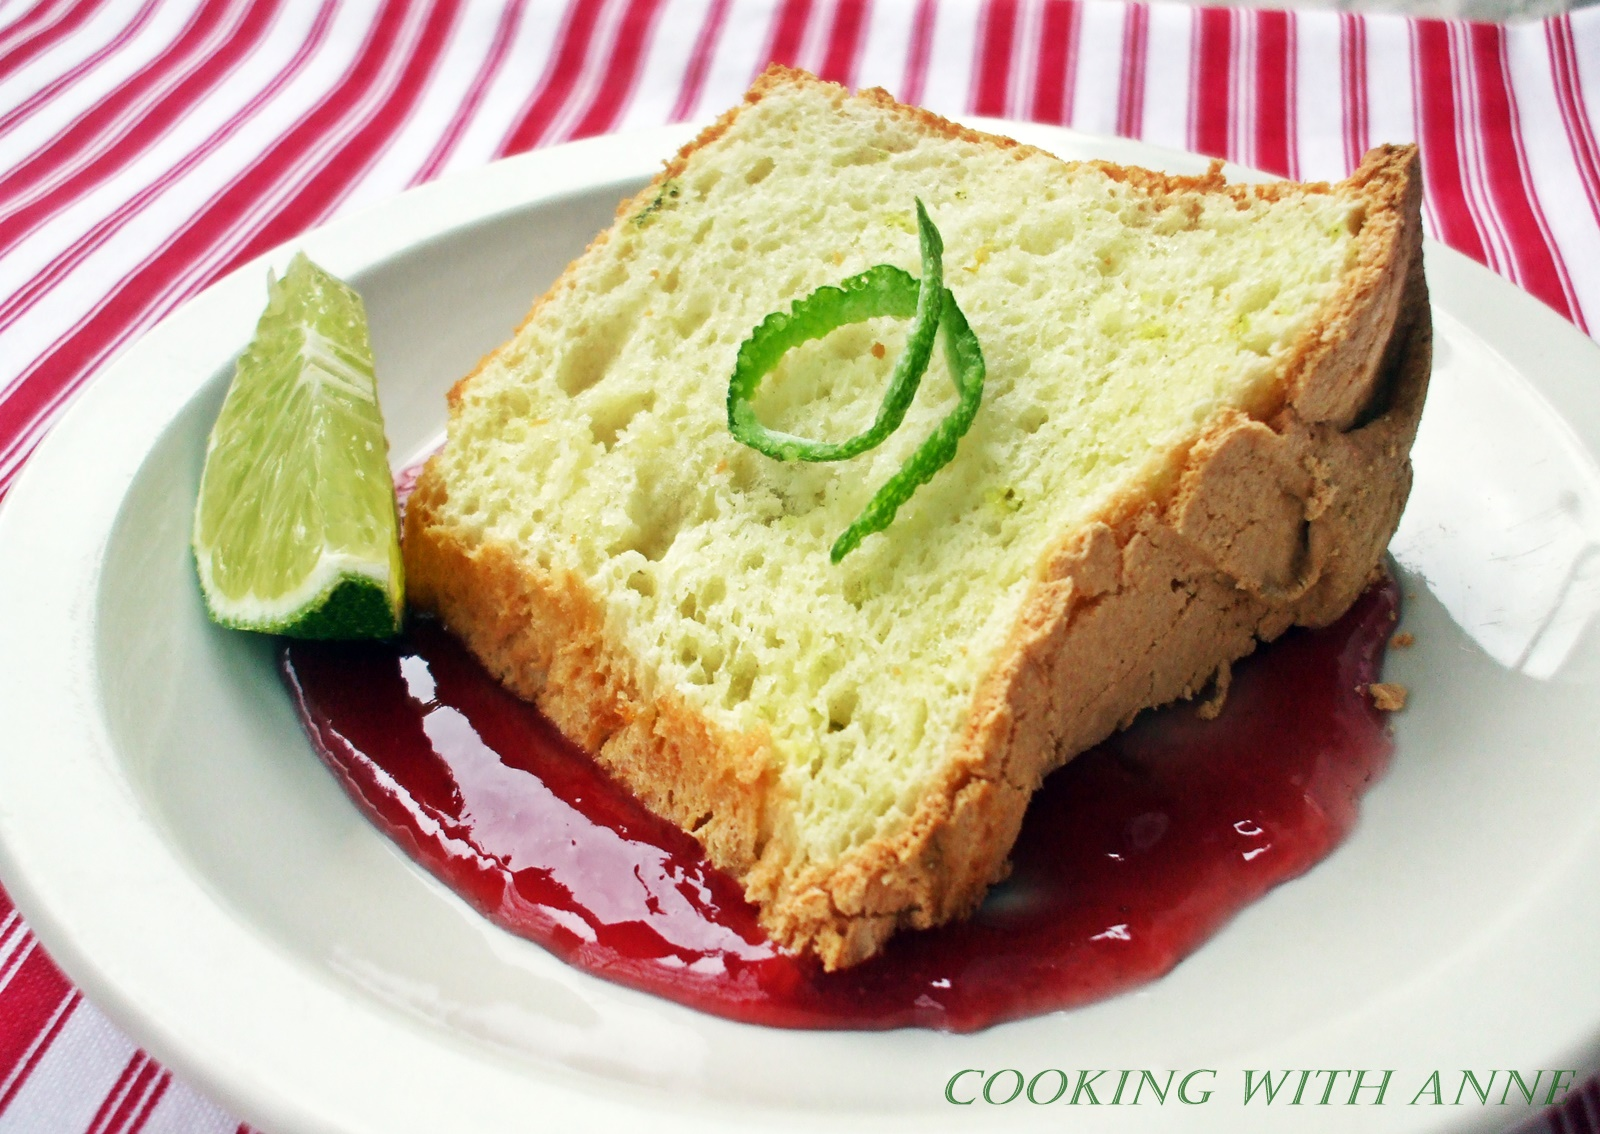 Cooking with Anne: Lime Angel Food Cake with Raspberry Sauce